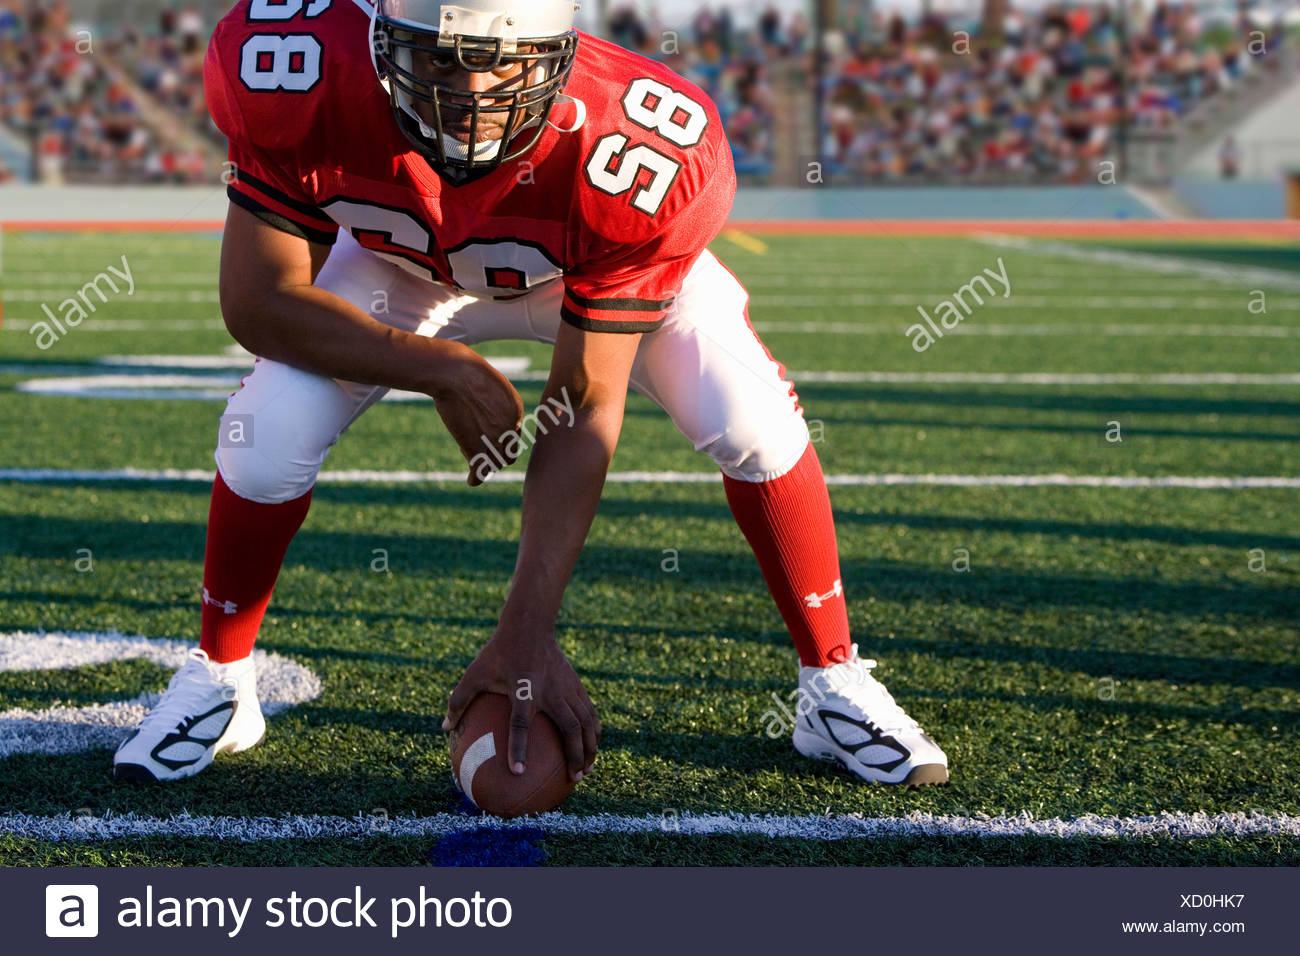 Center poised to snap football on field - Stock Image